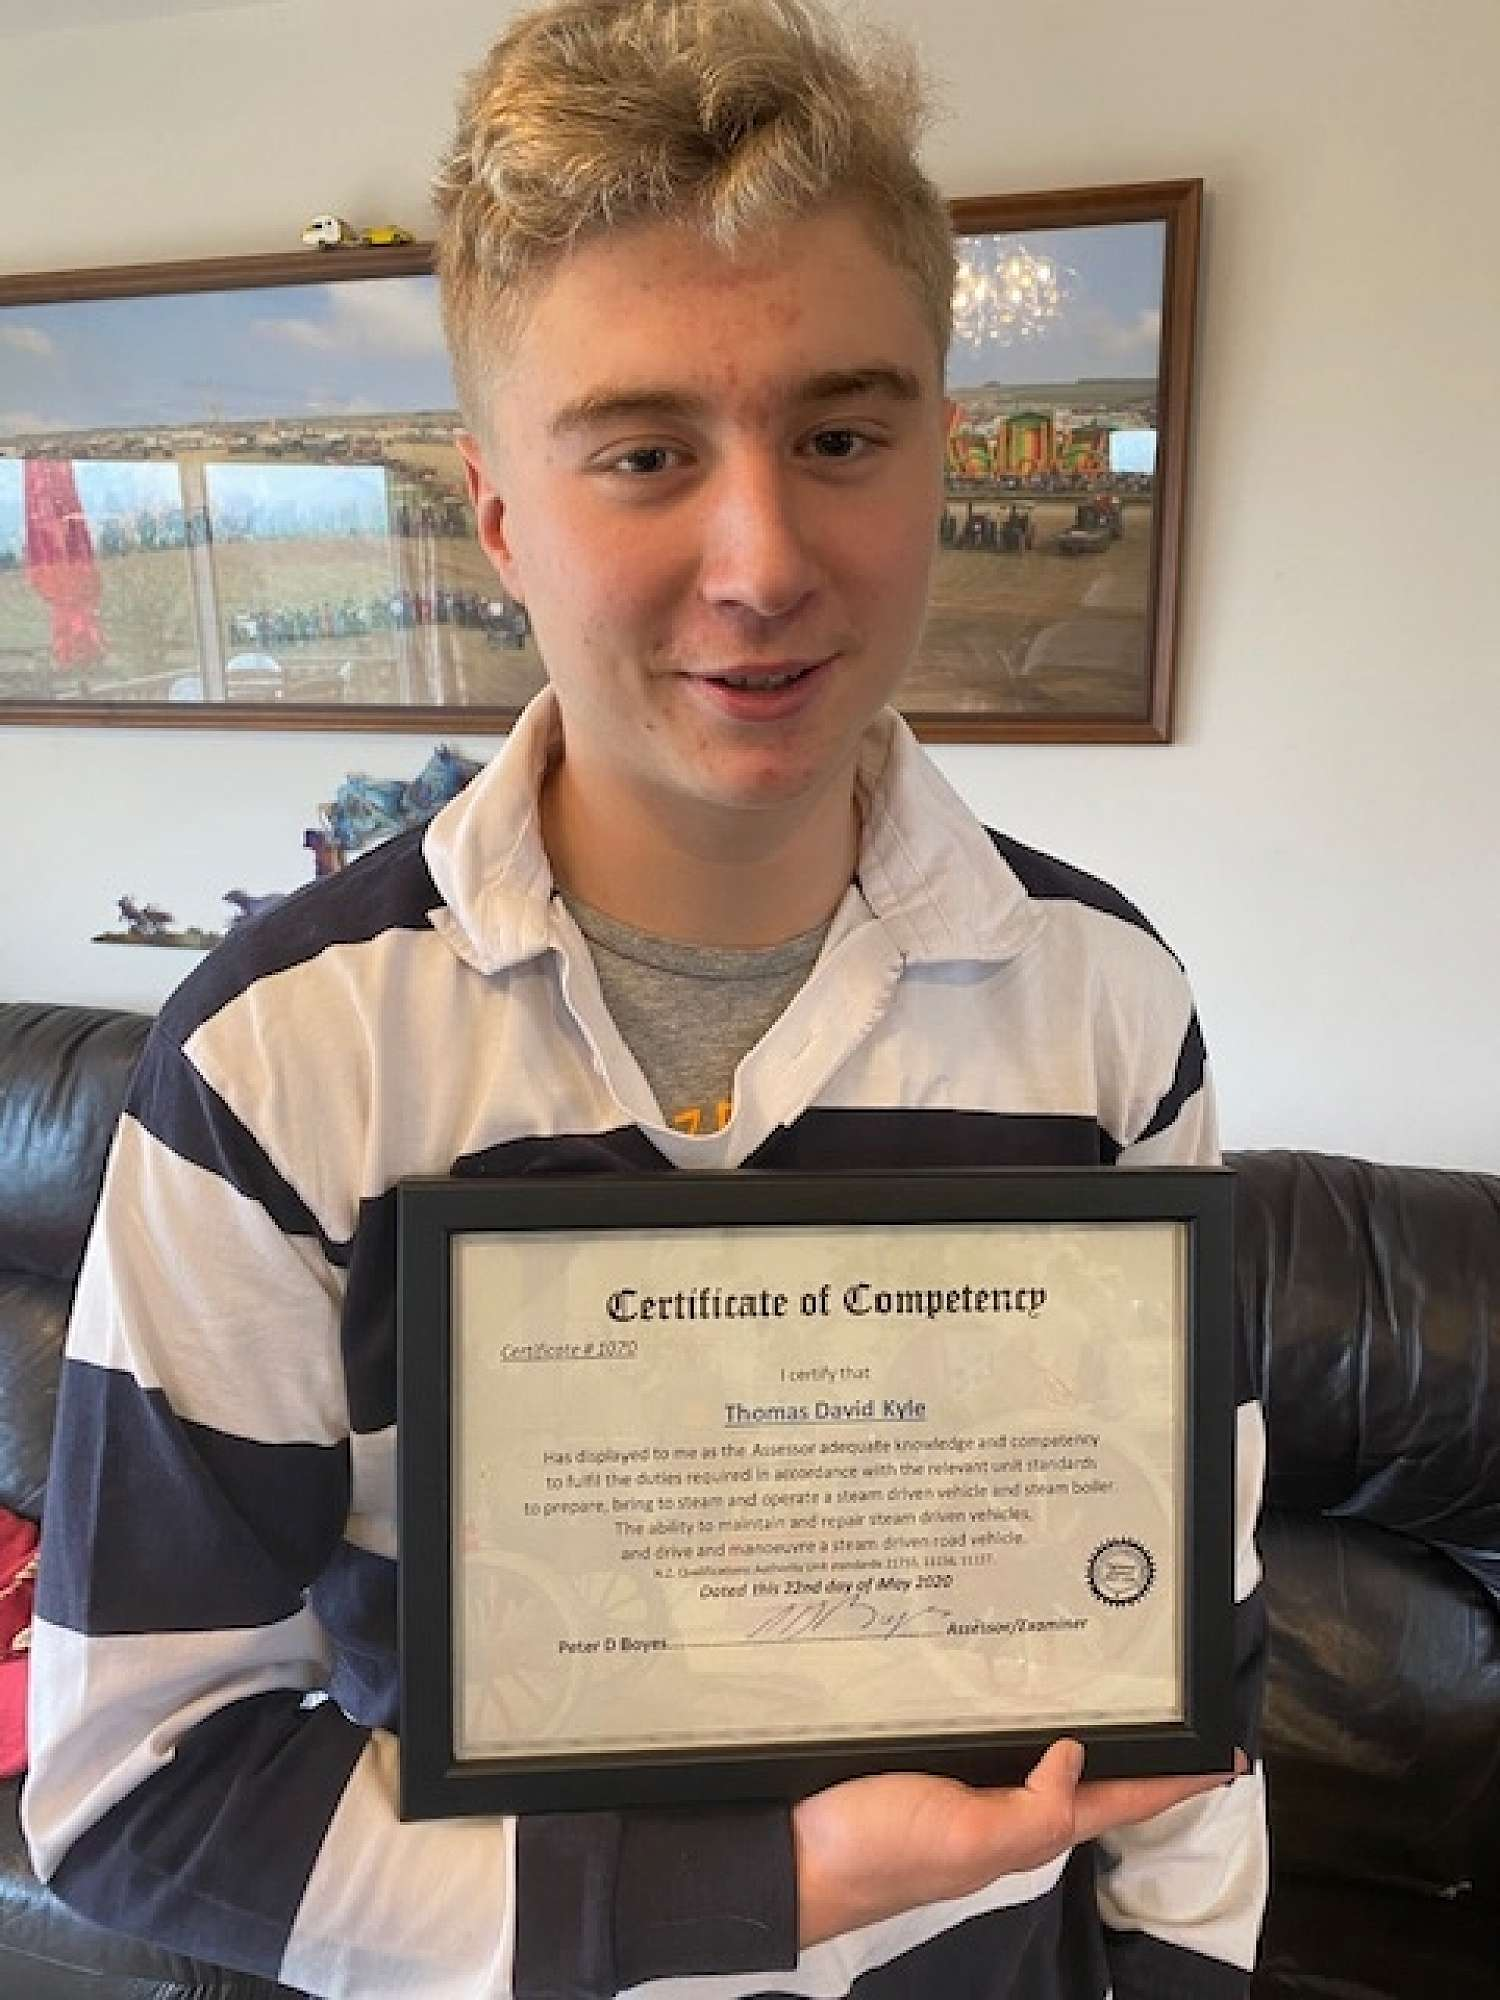 Thomas Kyle and his Certificate of Competency